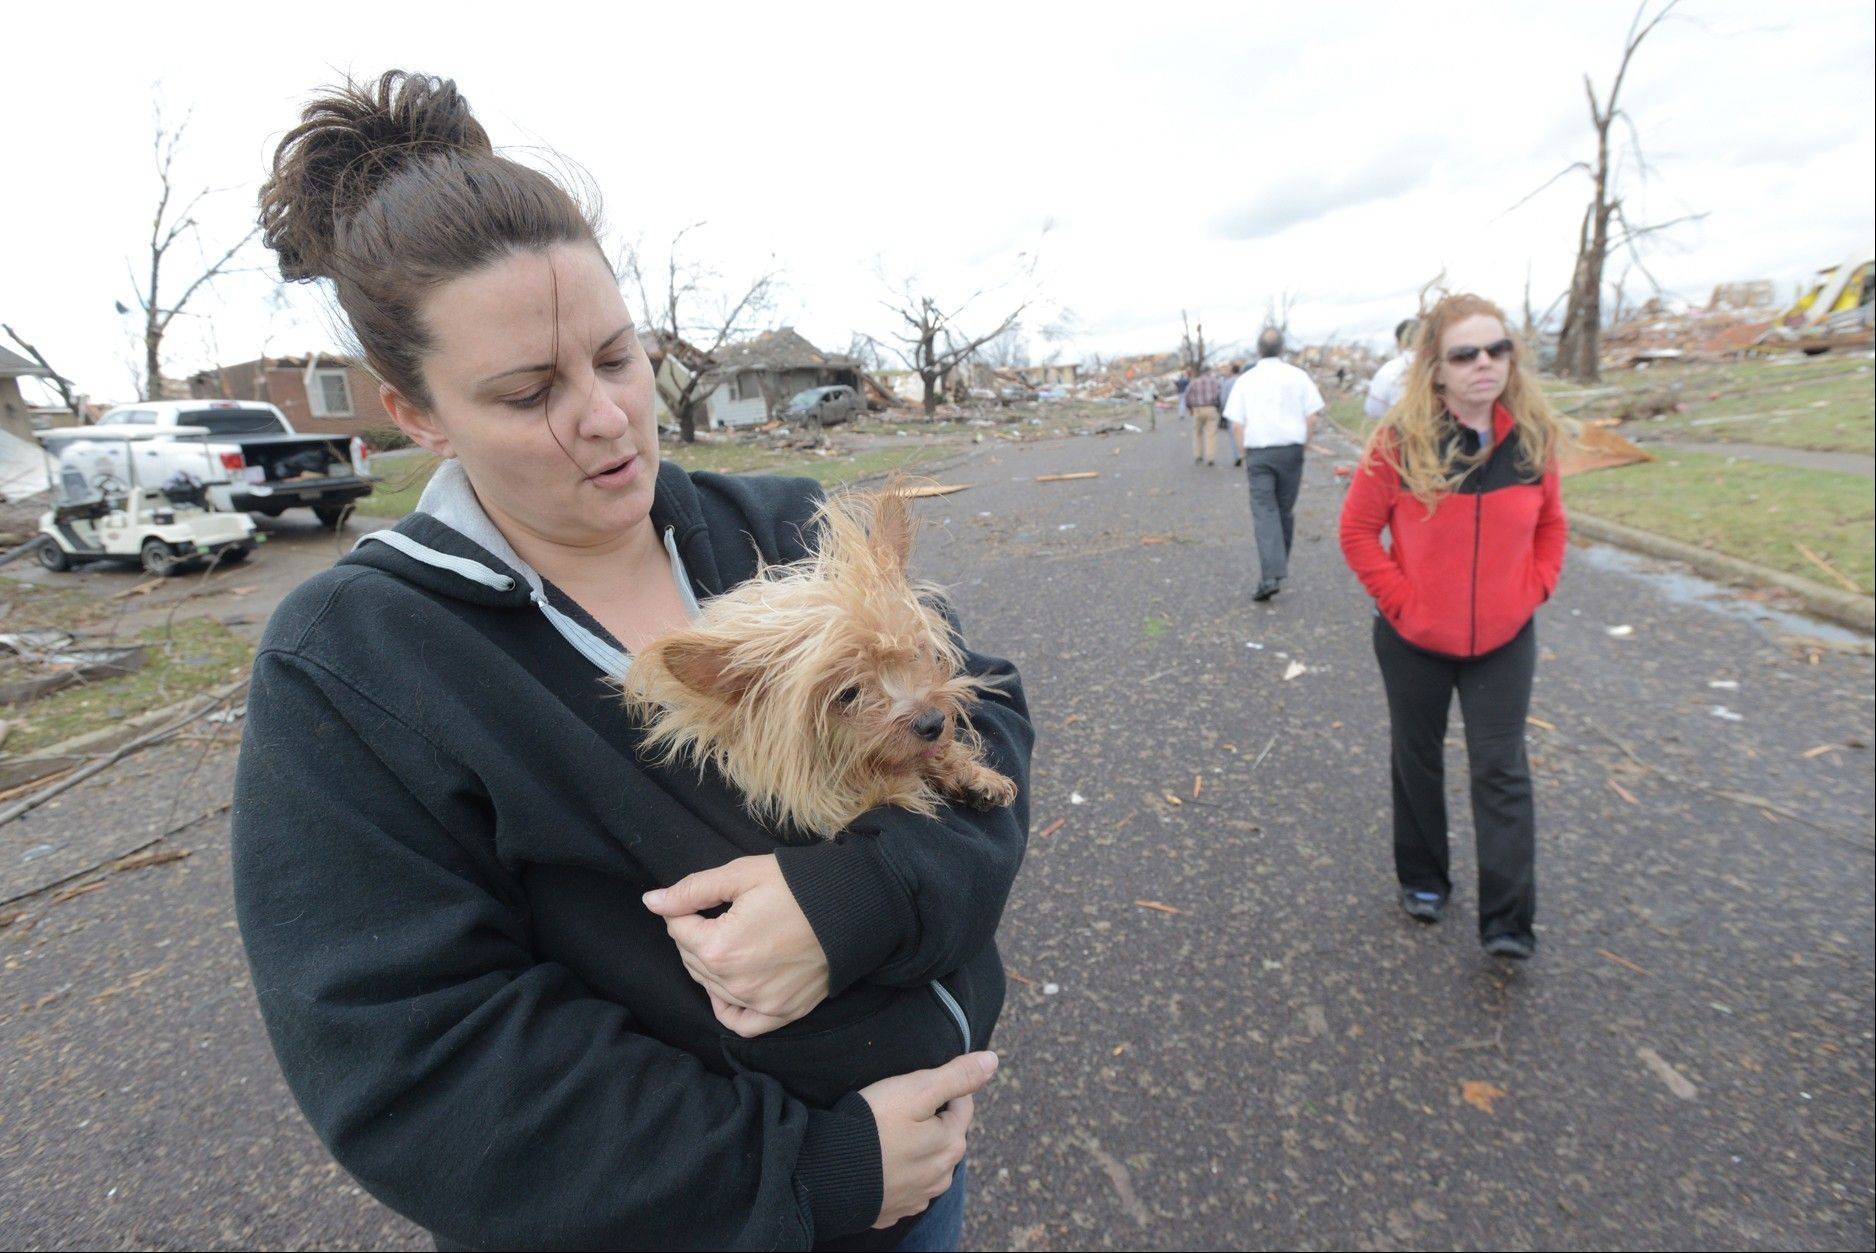 Aimee Royer holds a dog she rescued from debris after a Sunday morning tornado sliced through a subdivision on the North side of Washington, Ill., Sunday, Nov. 17, 2013. Royer and her friend, Kendra Gray, at right, said their home was spared. Several homes are cleared down to the foundation. Intense thunderstorms and tornadoes swept across the Midwest, causing extensive damage in several central Illinois communities while sending people to their basements for shelter.